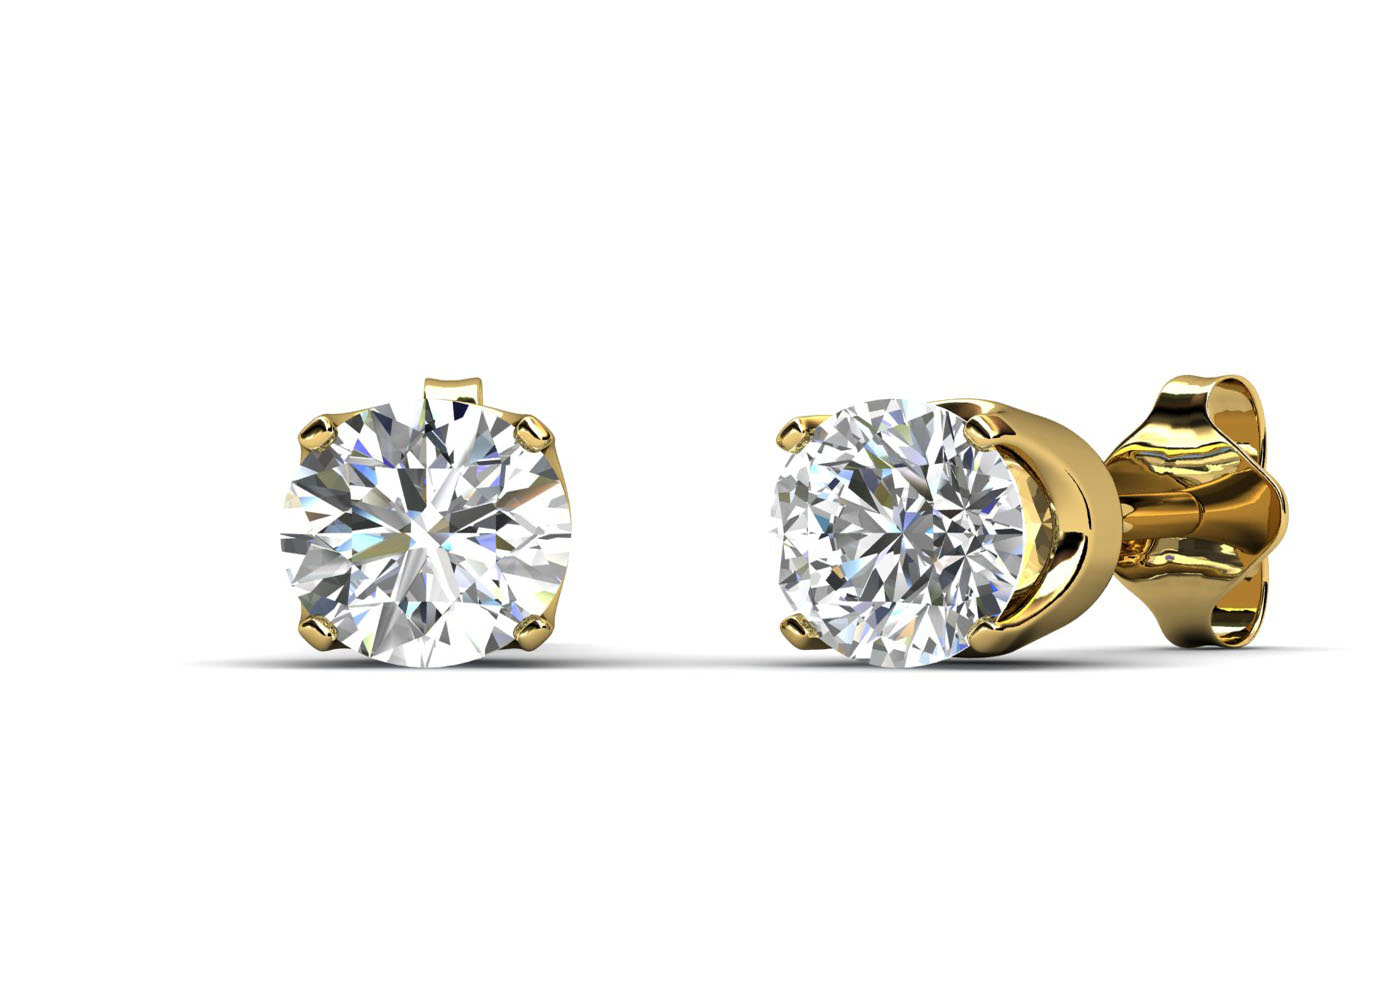 9ct Claw Set Diamond Earrings 0.40 Carats - Image 3 of 9